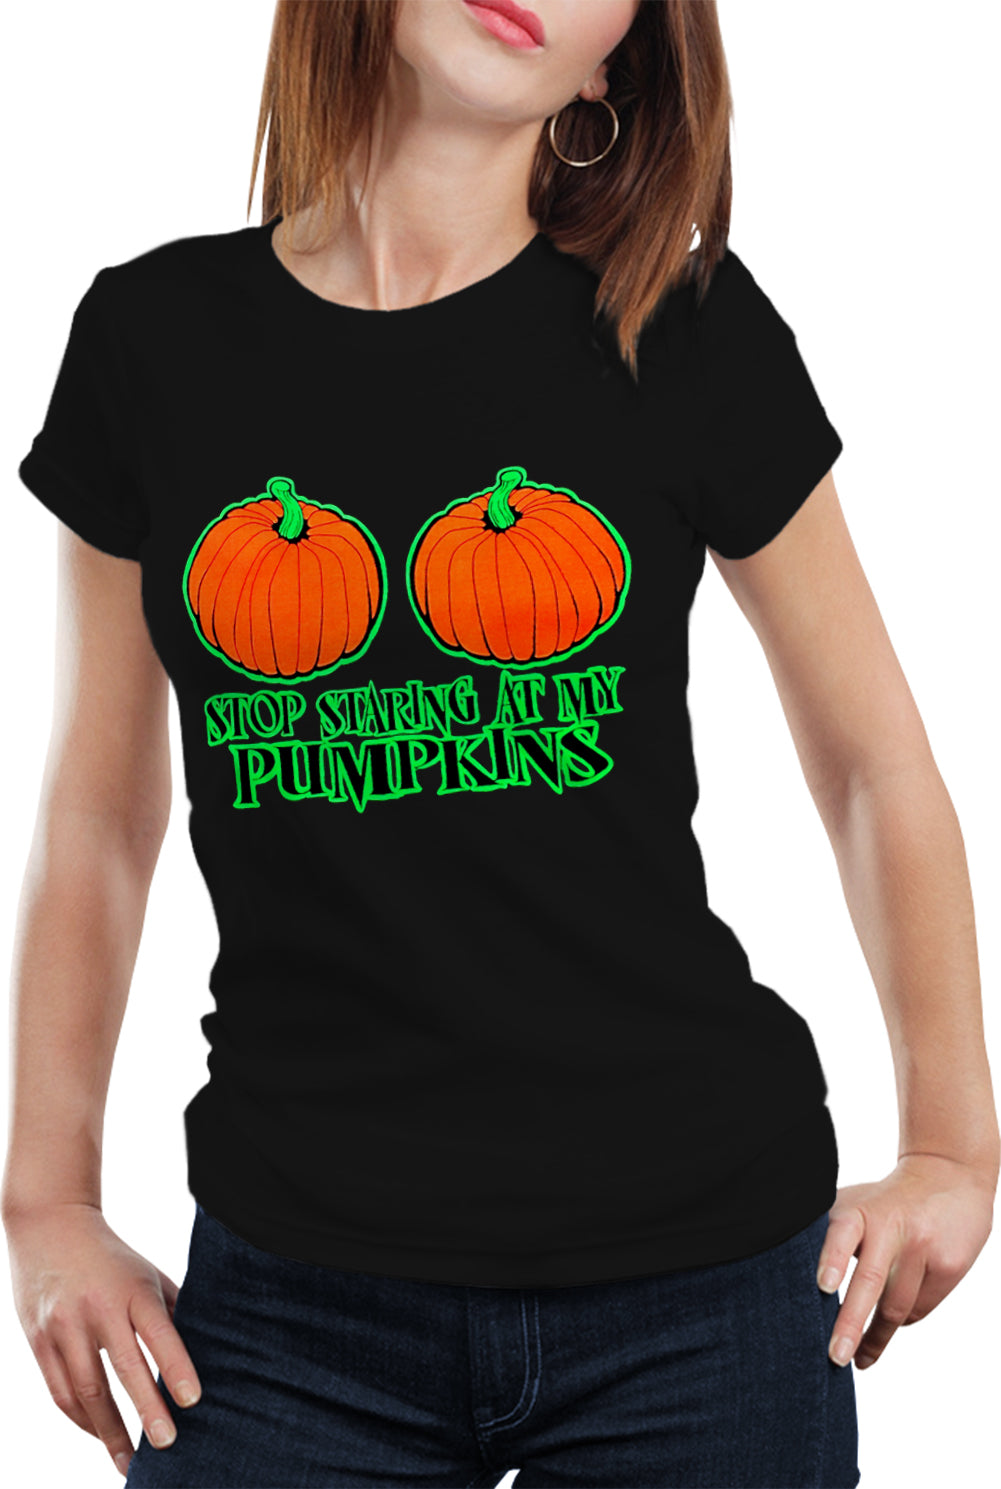 c3f2e4a36 Halloween Costume T-shirts - Stop Staring At My Pumpkins Girls T-shirt